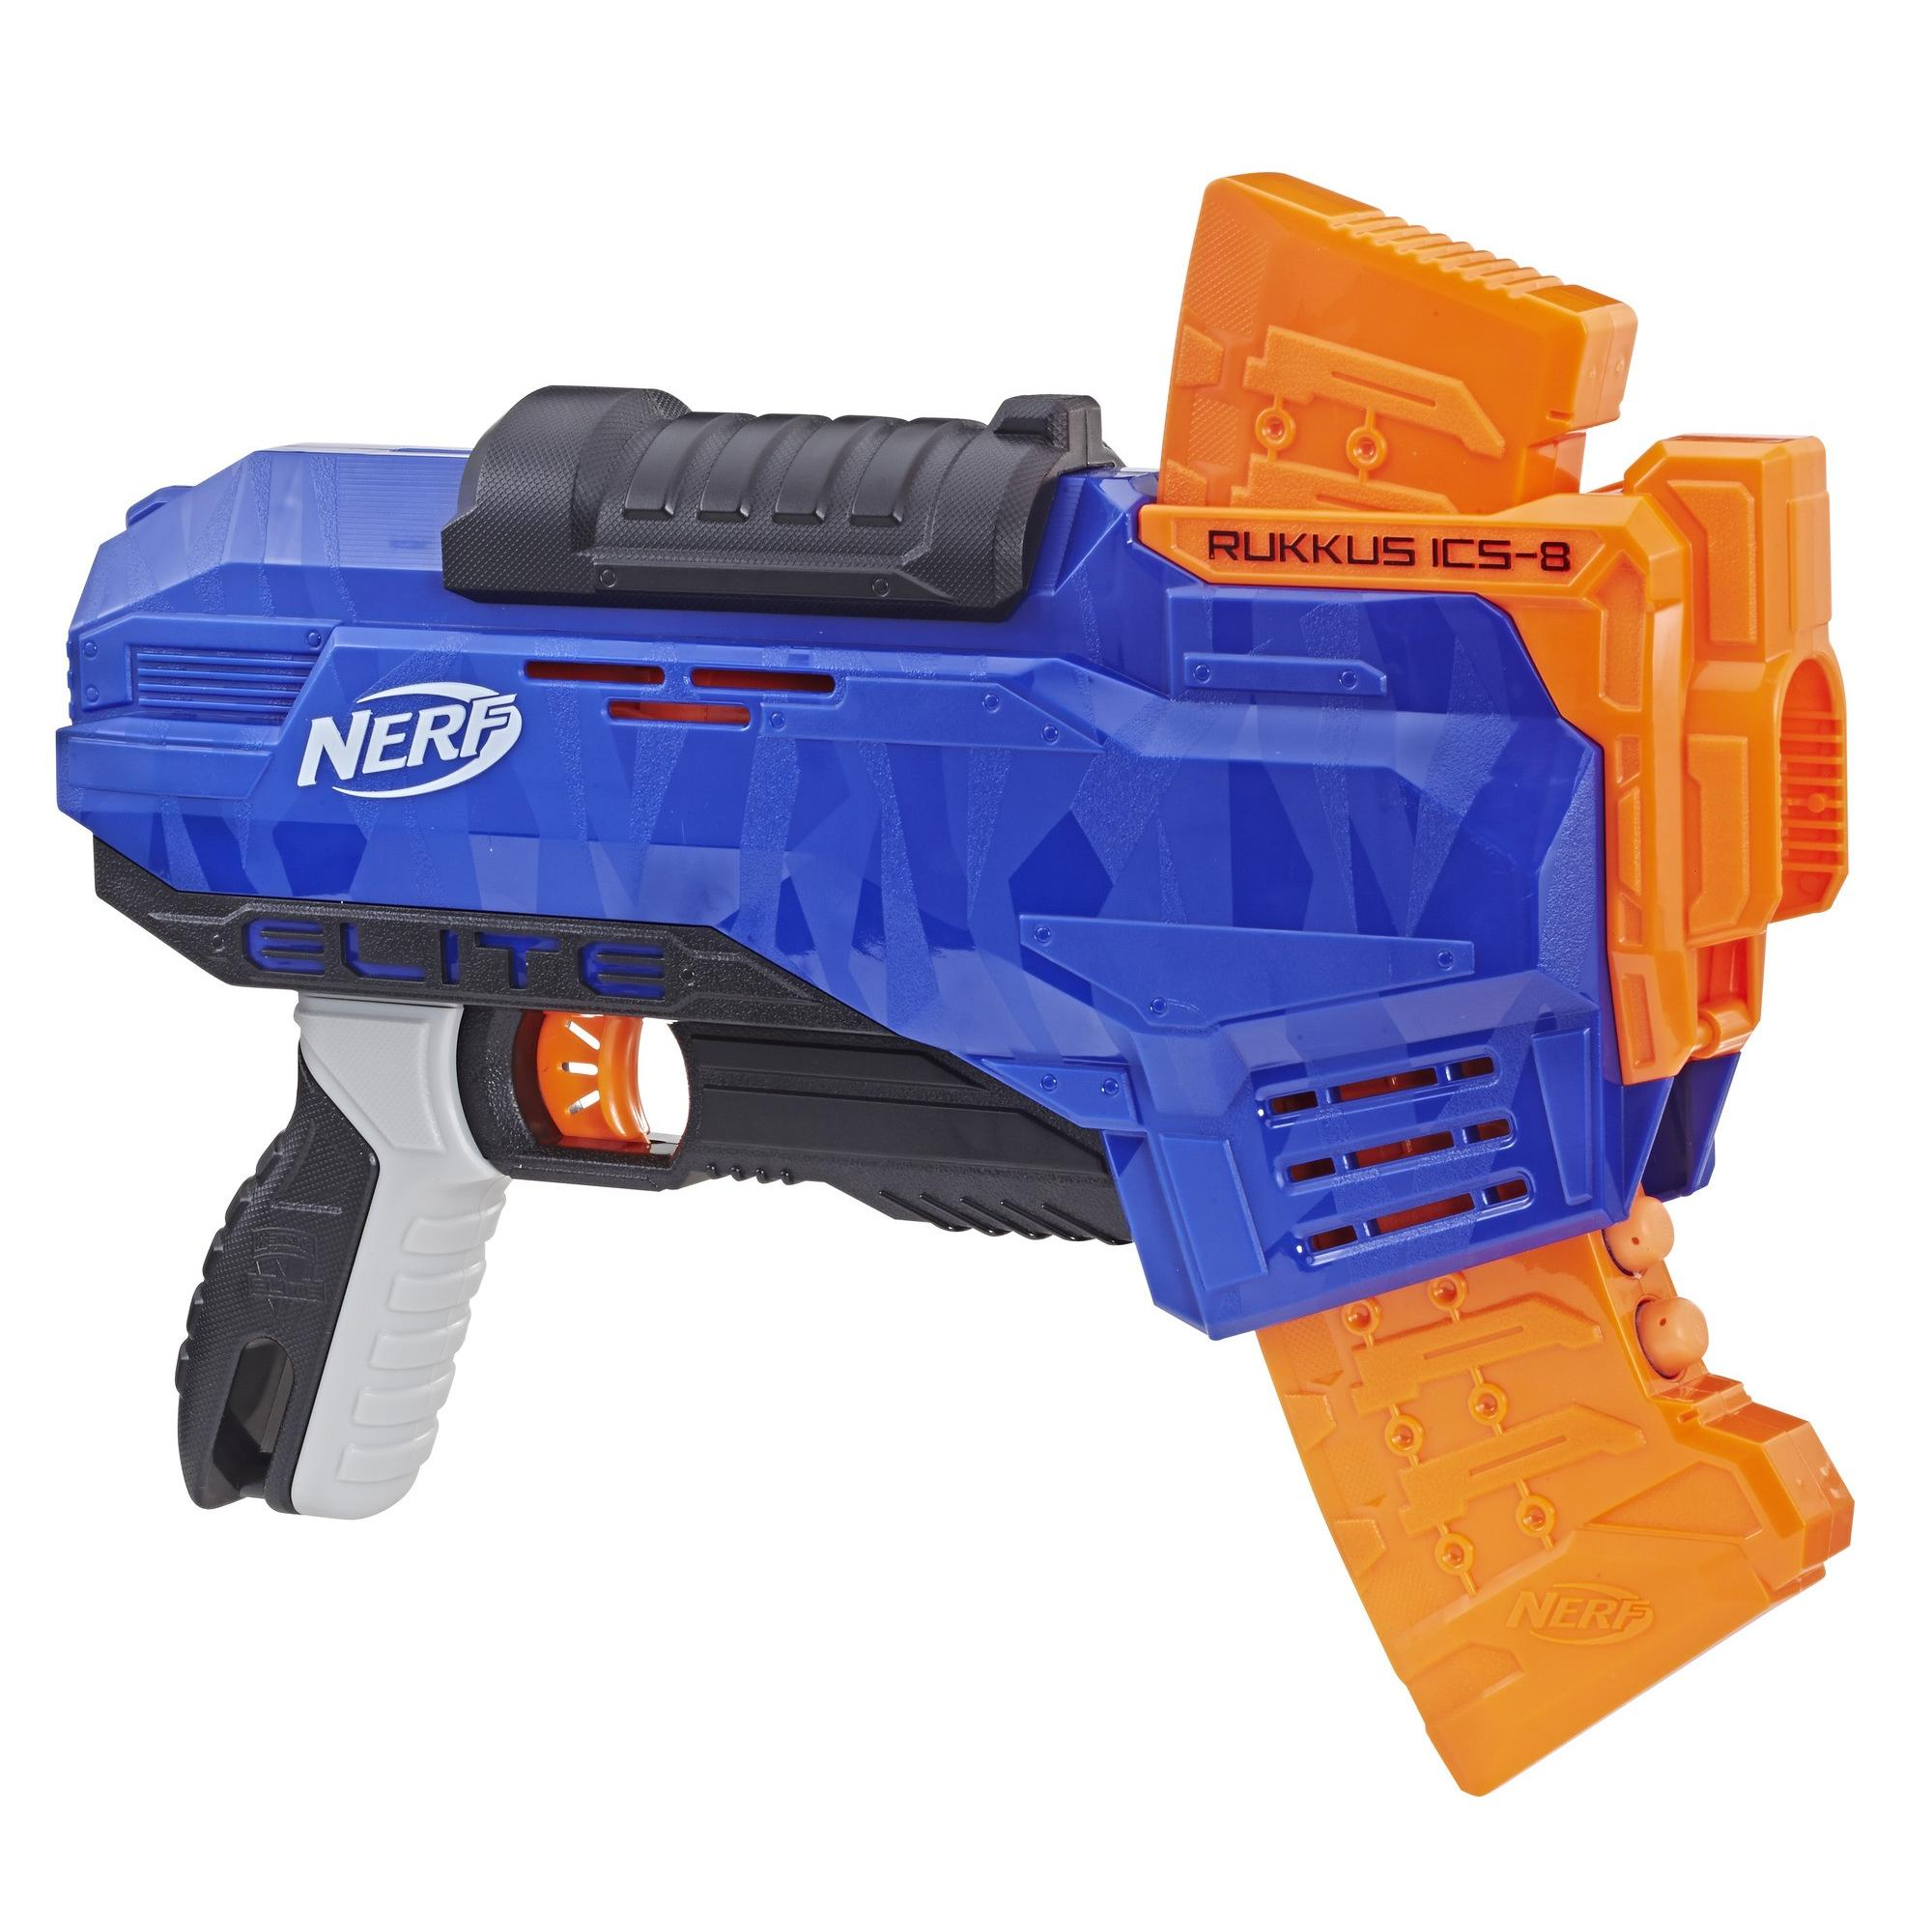 Nerf N-Strike Elite Rukkus ICS-8, for Ages 8 and Up